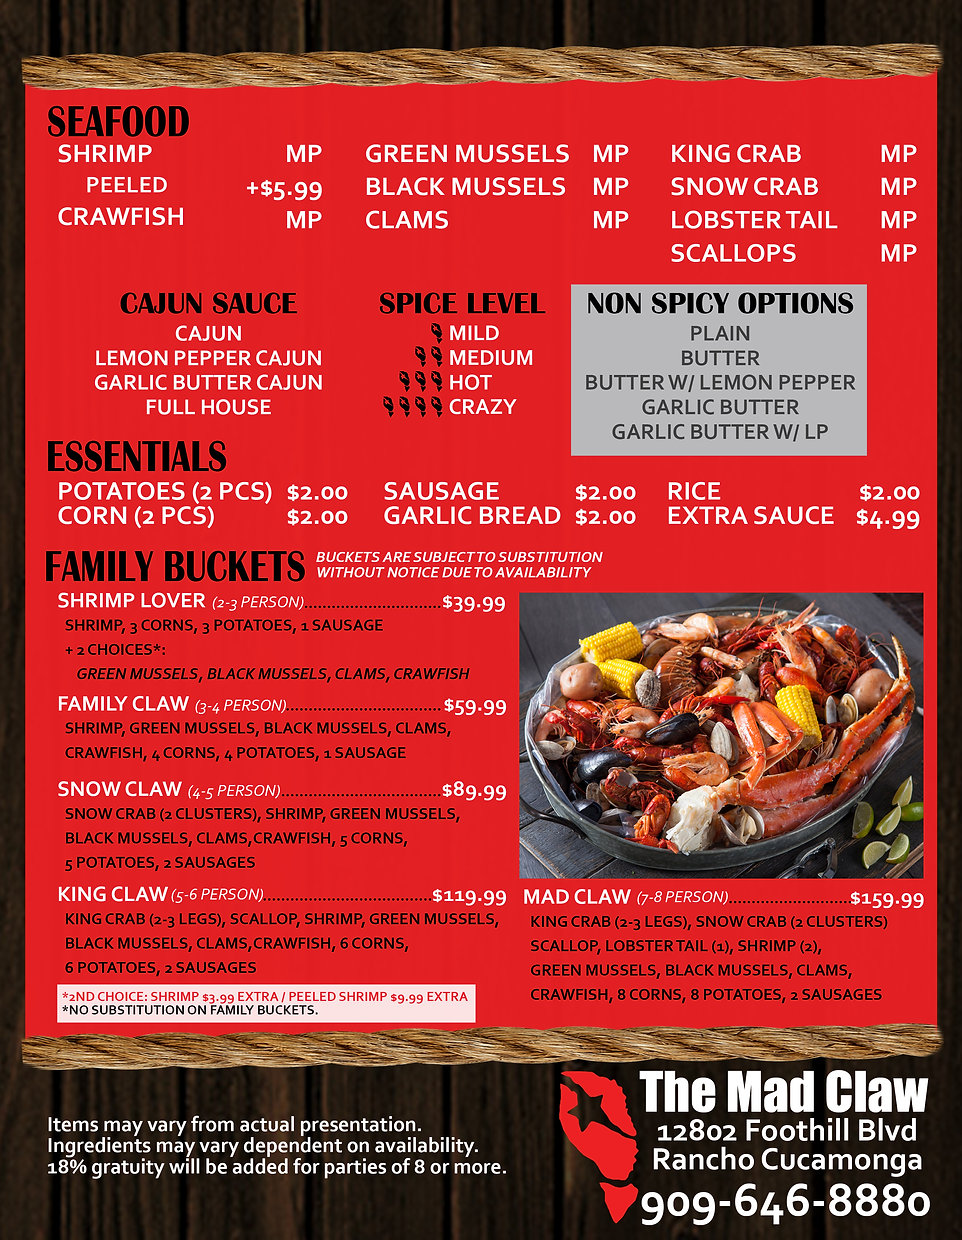 THE MAD CLAW MENU FRONT 06 10 21.jpg